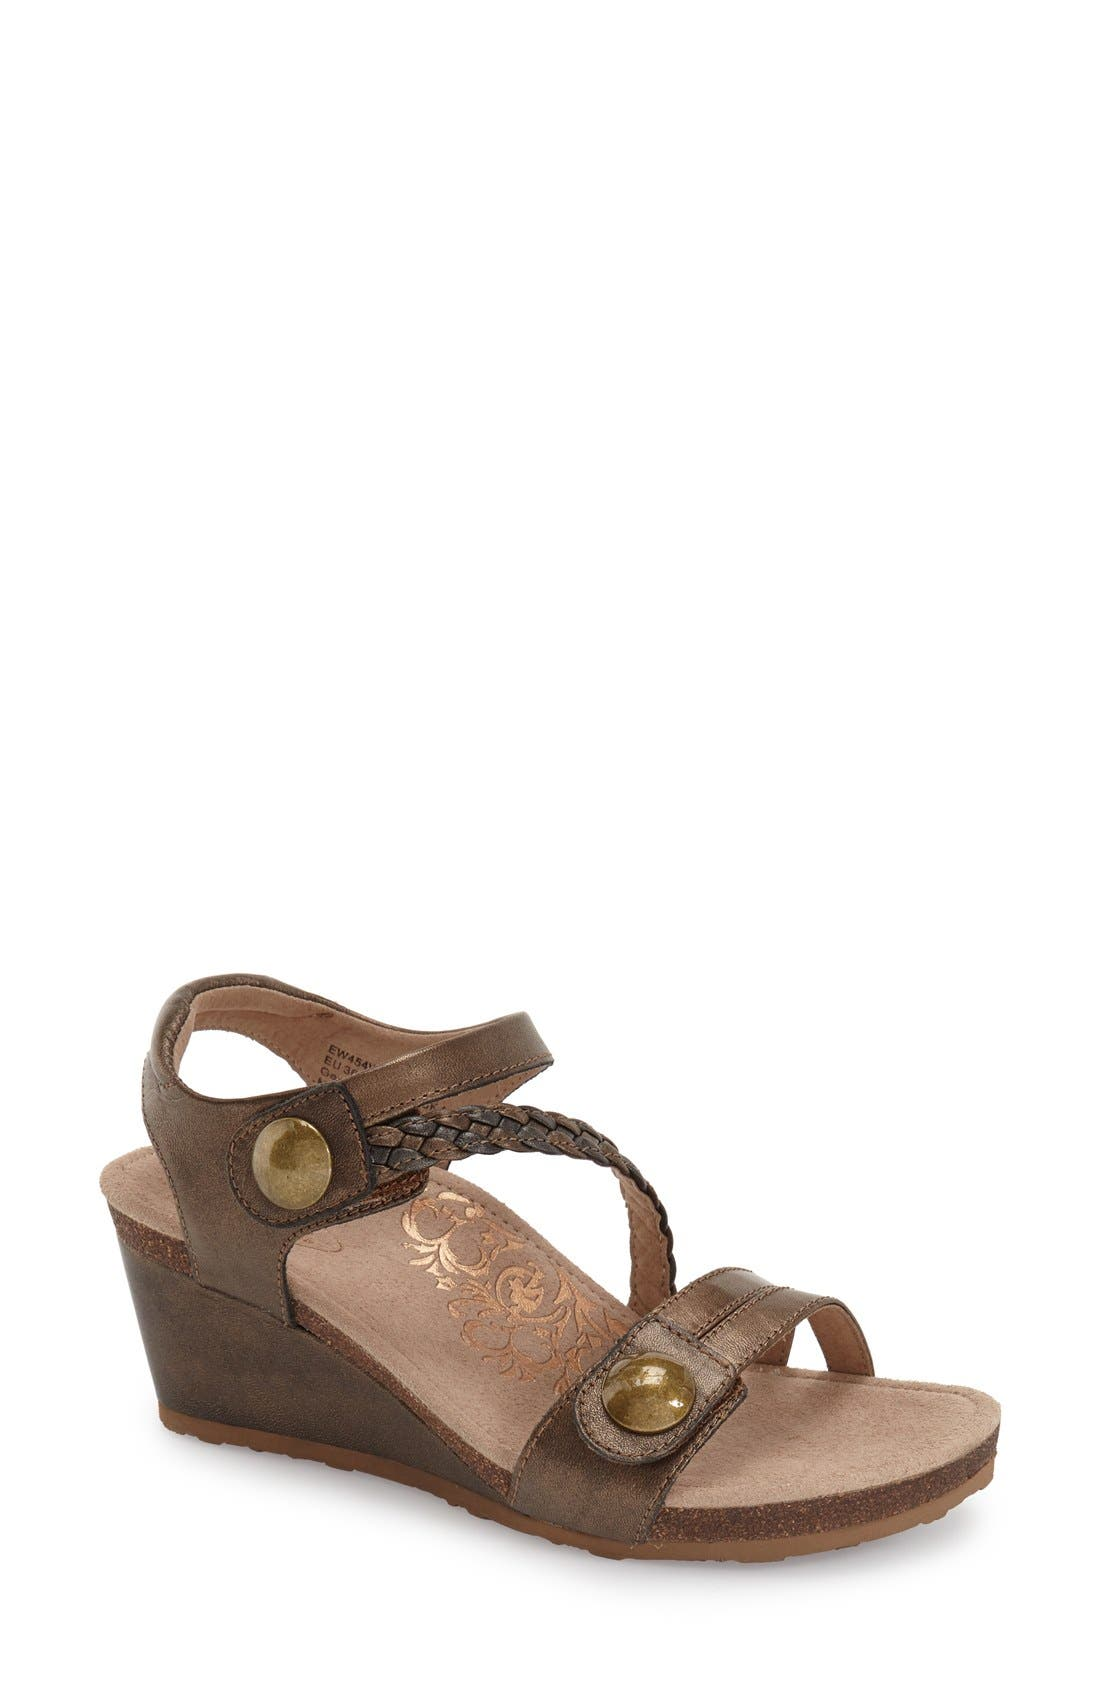 Aetrex 'Naya' Wedge Sandal (Women)